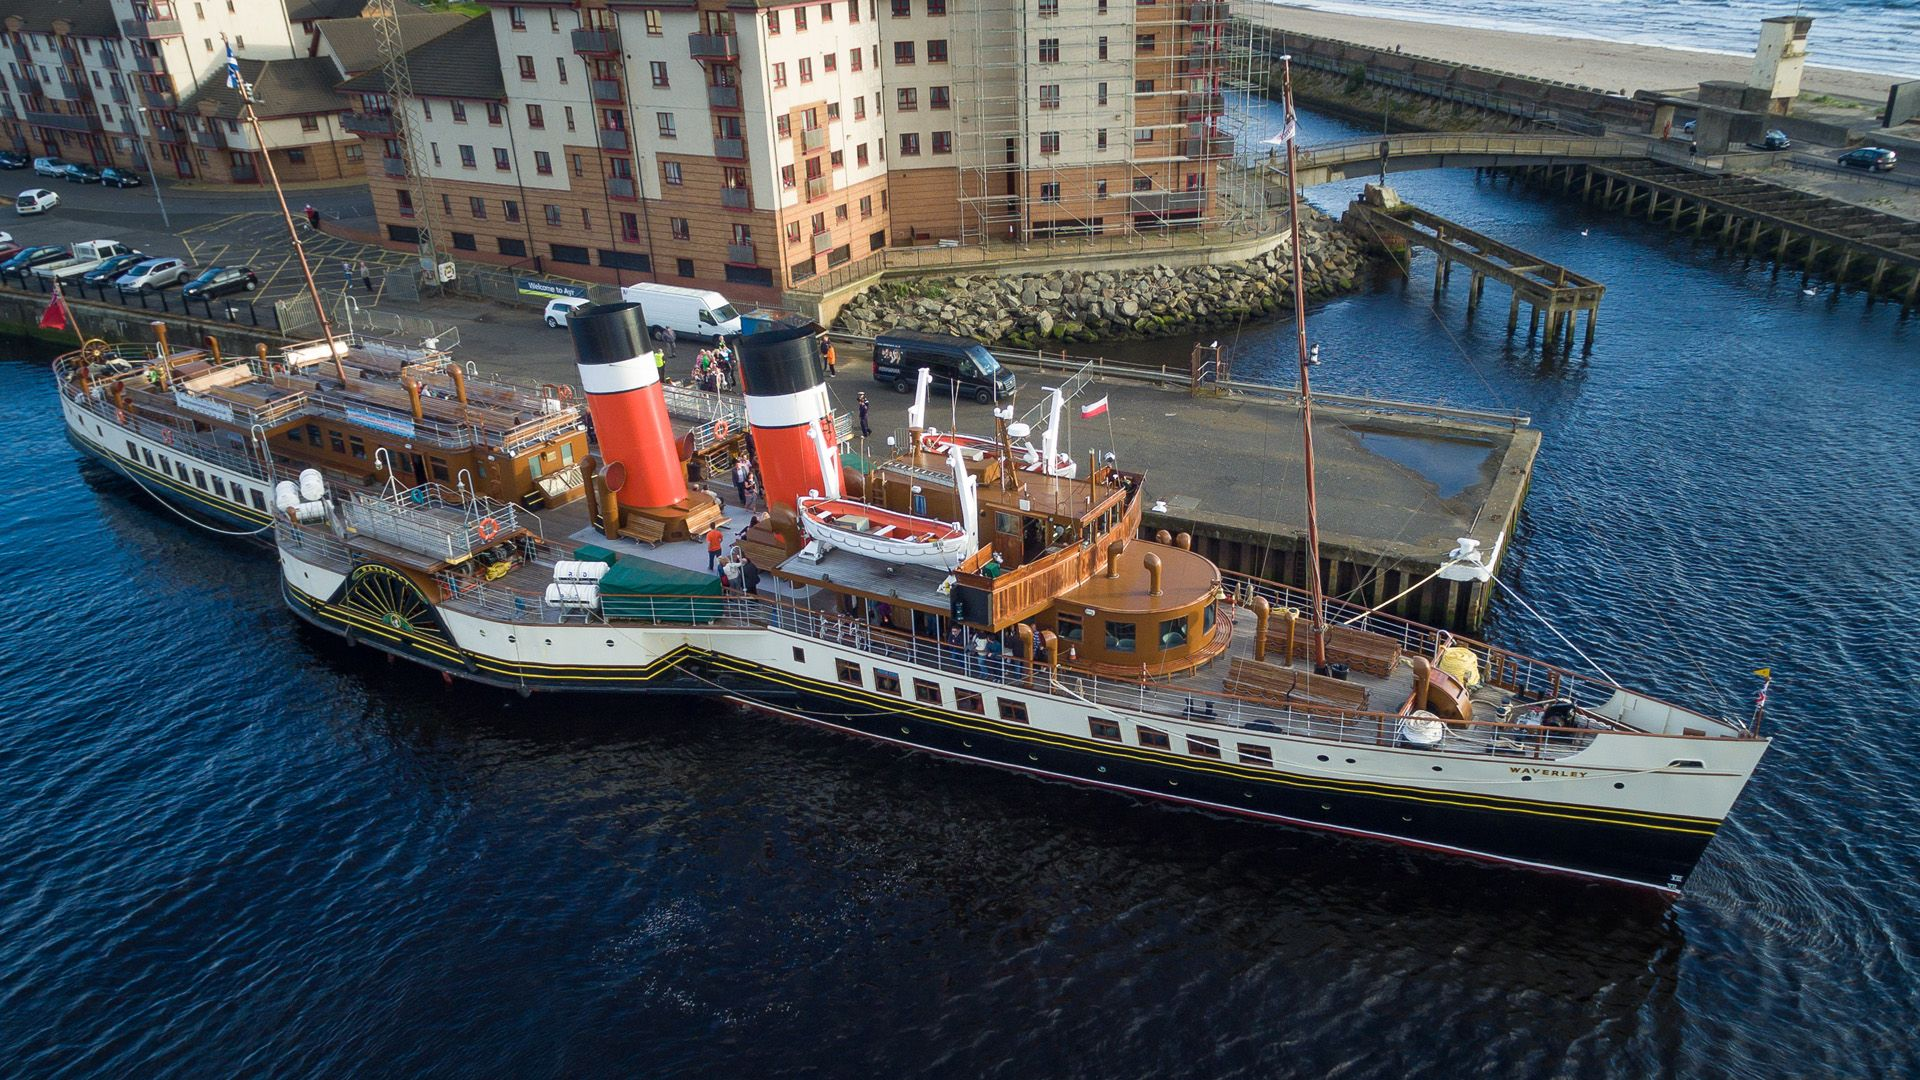 The Waverley Paddle Steamer departing on the West FM cruise evening along the Firth of Clyde. #whywefly #aerialpixls #djiinspire1